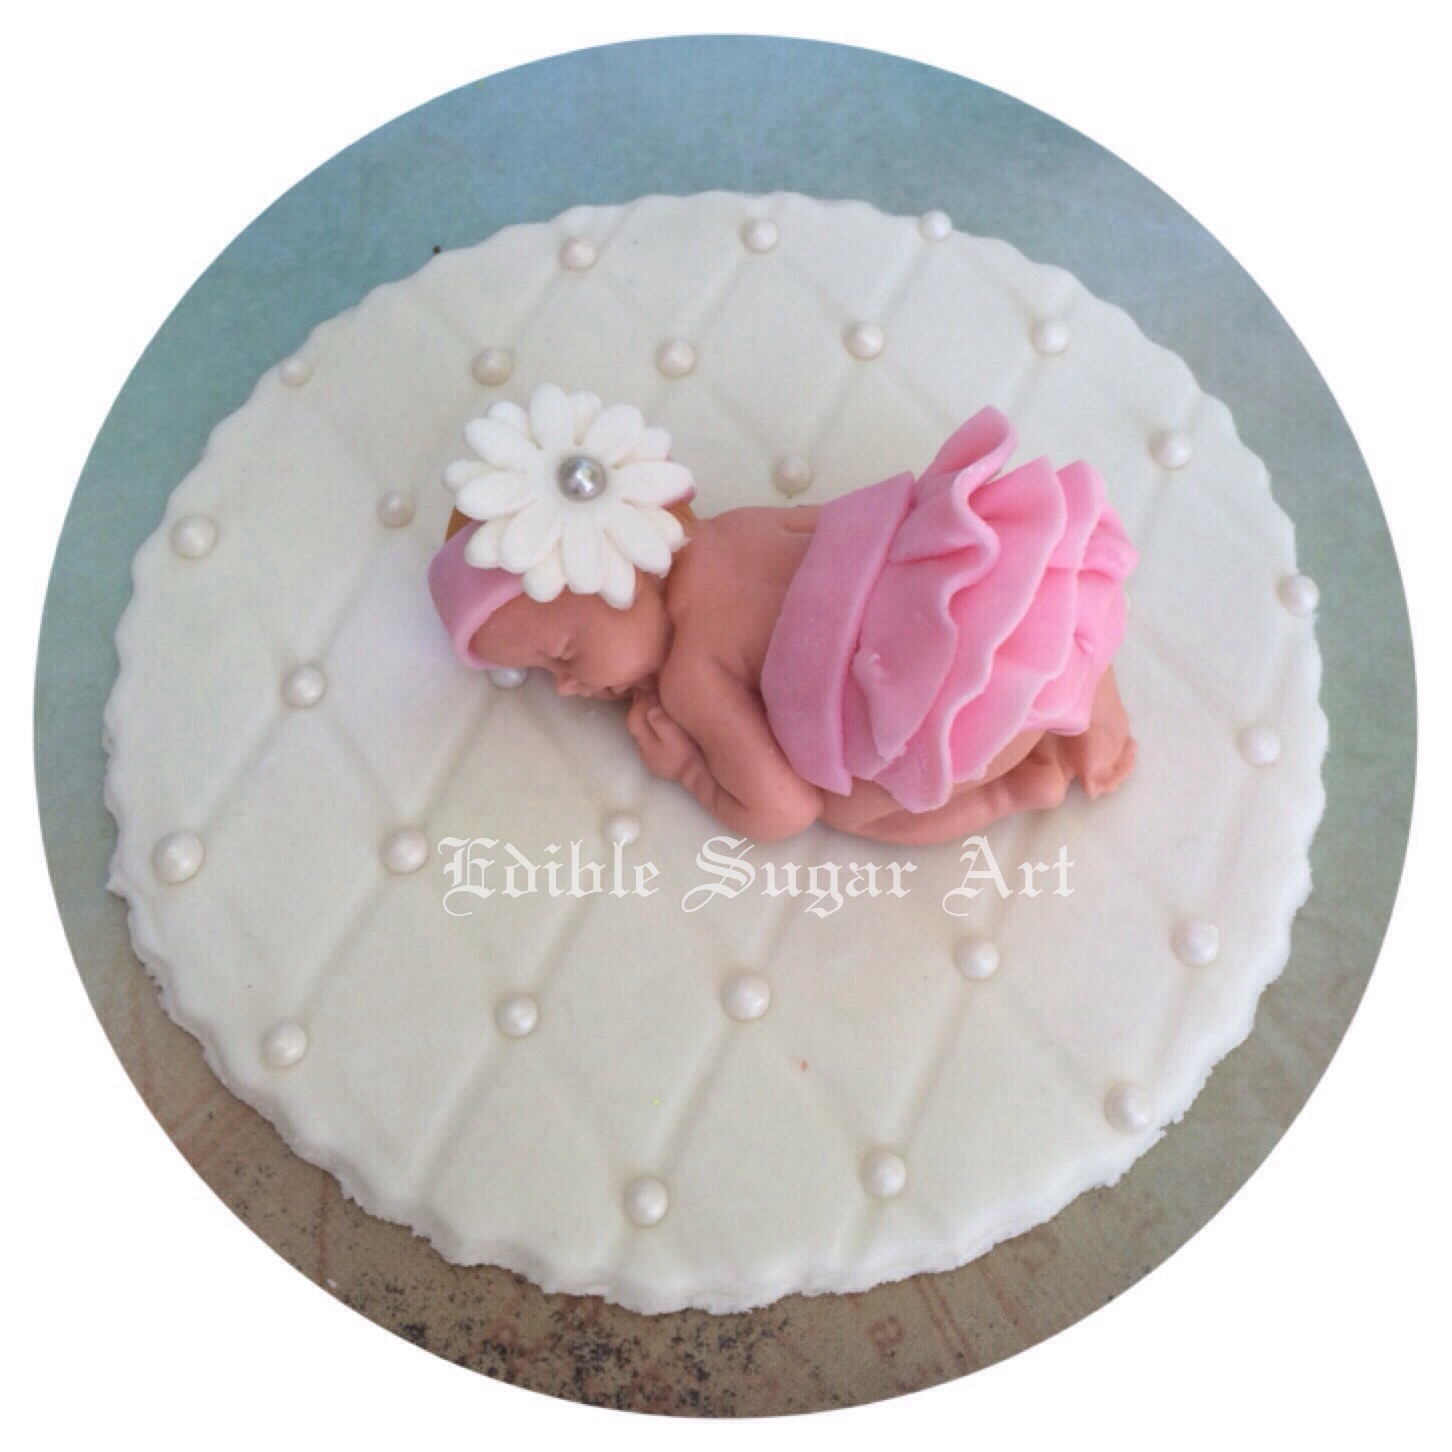 Cake Toppers Baby Shower Girl : BABY SHOWER CAKE TOPPER FONDANT EDIBLE PINK AND GREY BABY ...